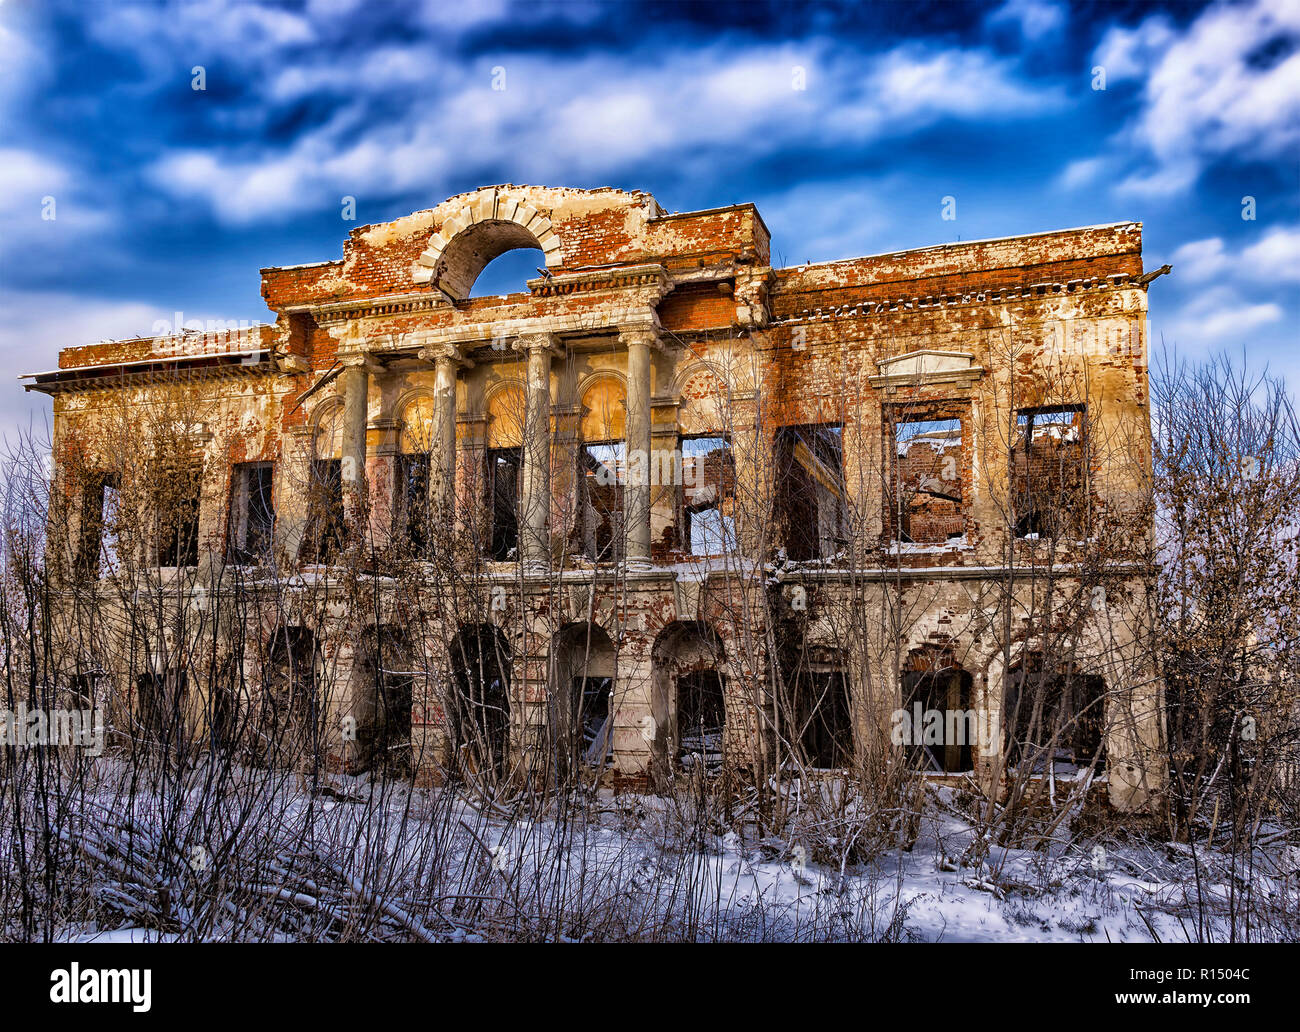 the broken Old noble house in Russia - Stock Image